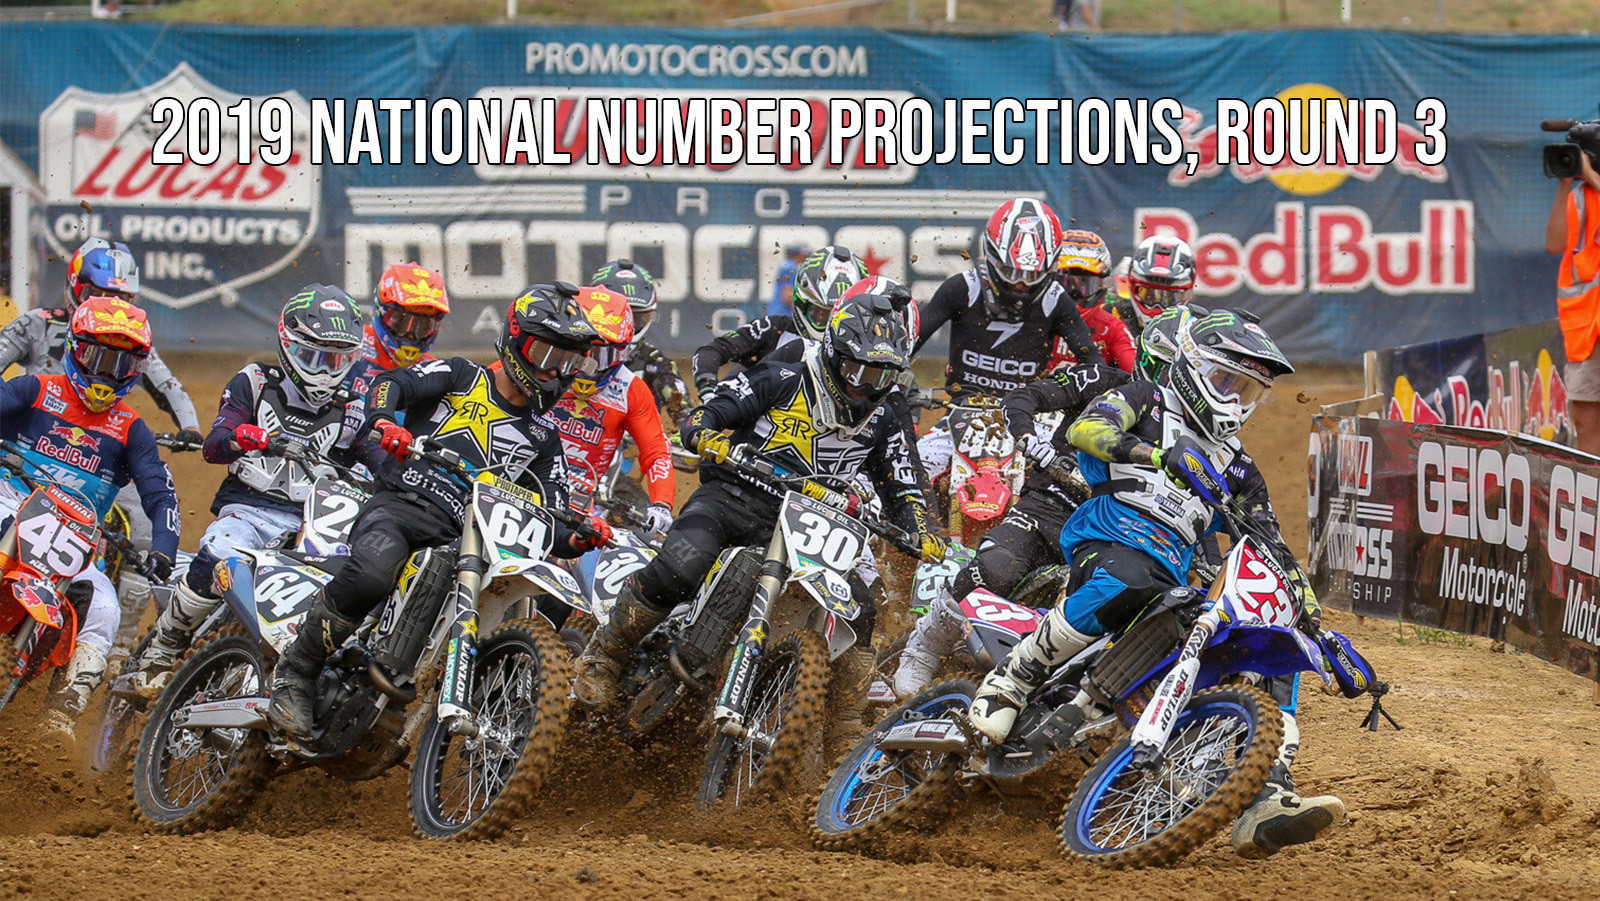 2019 ama national number projections round 3